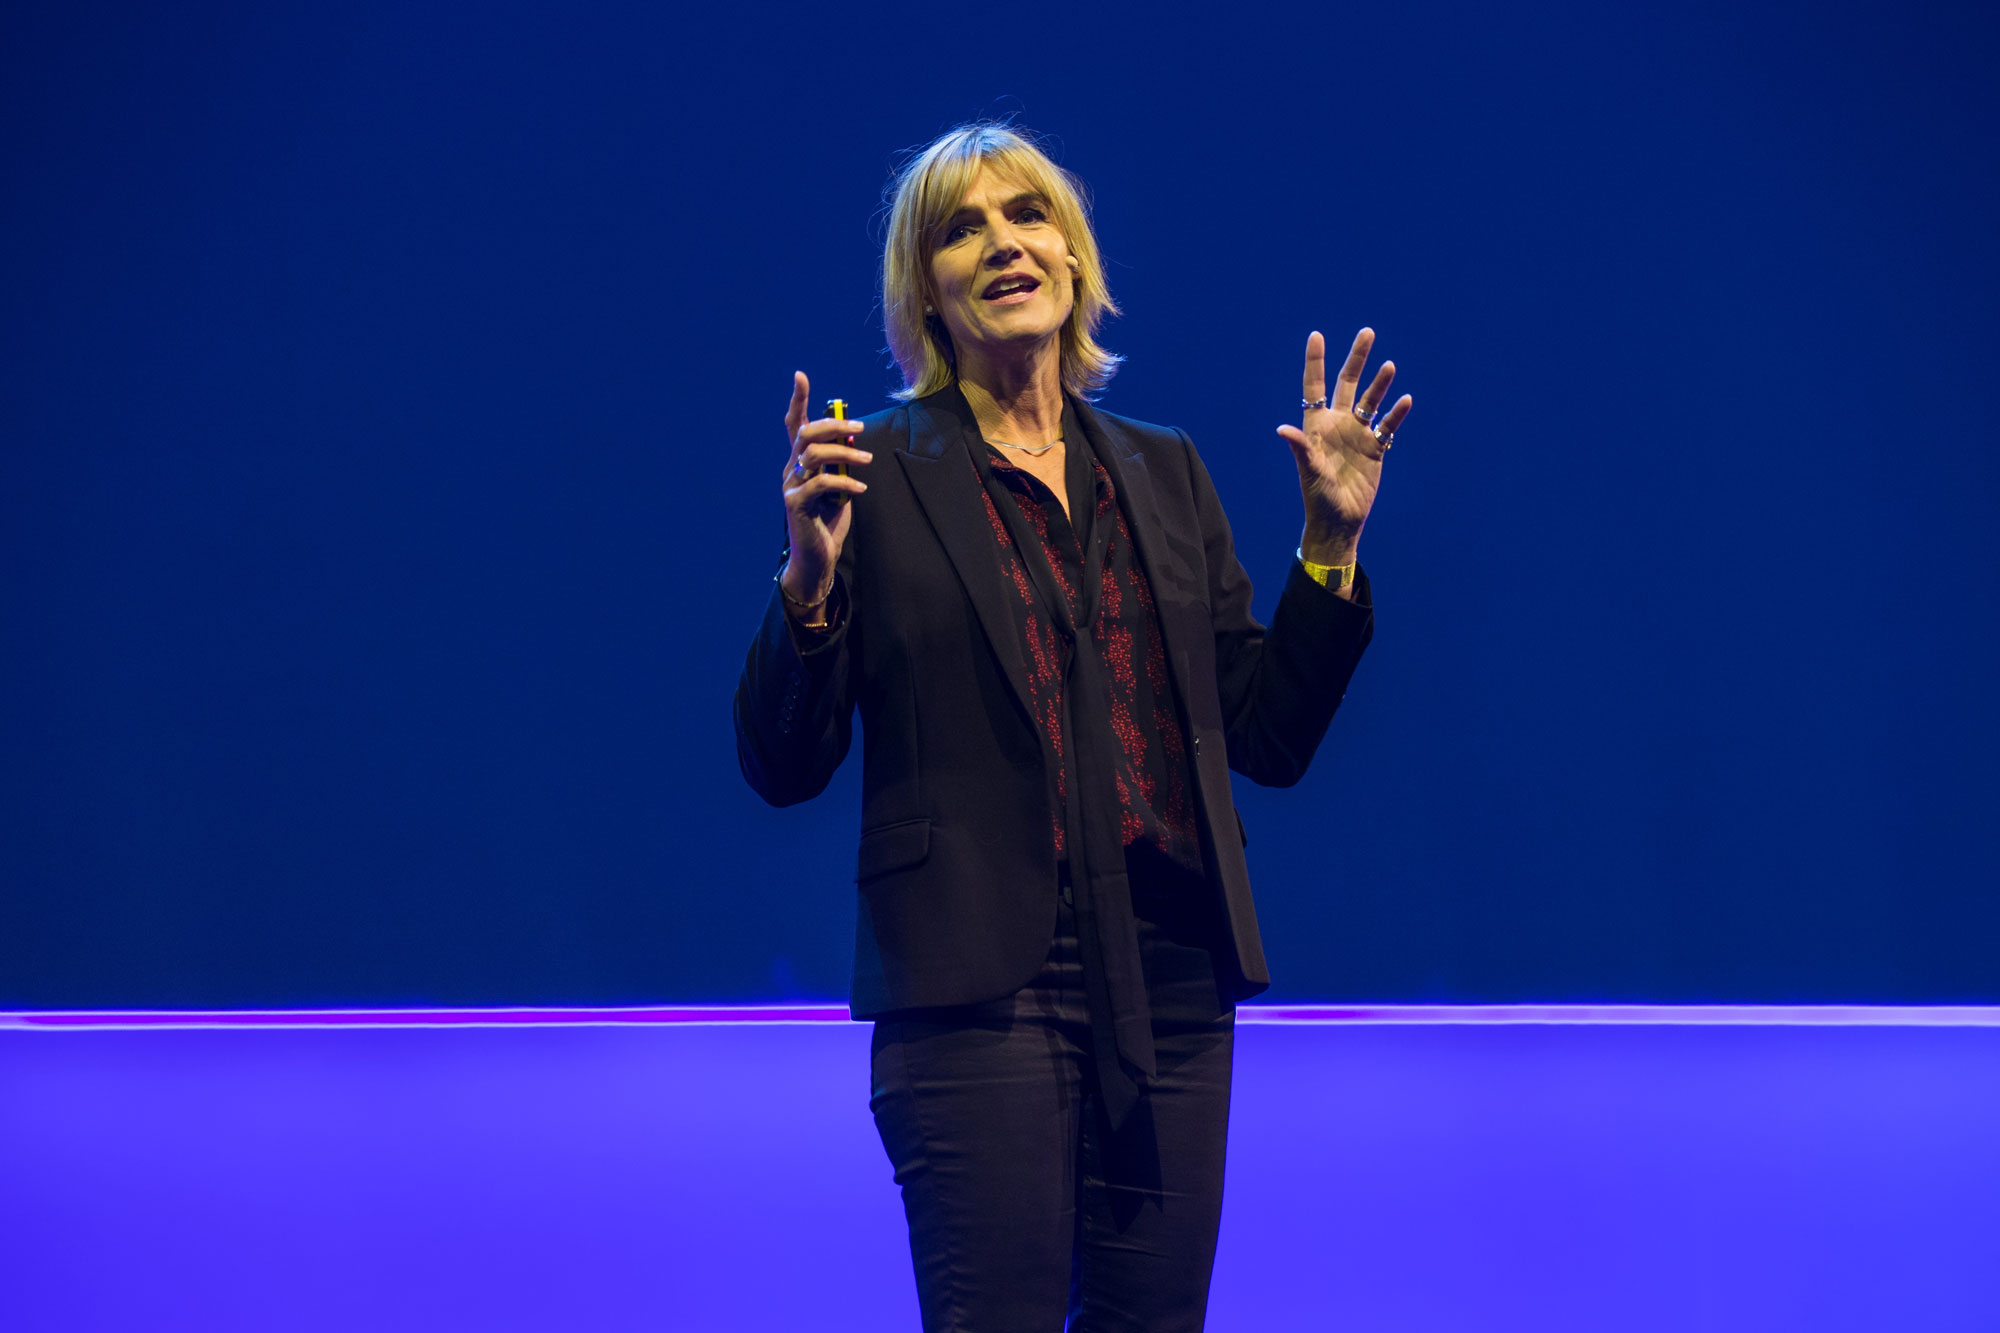 Lucy Adams, CEO Disruptive HR, on stage at Xerocon London 2018